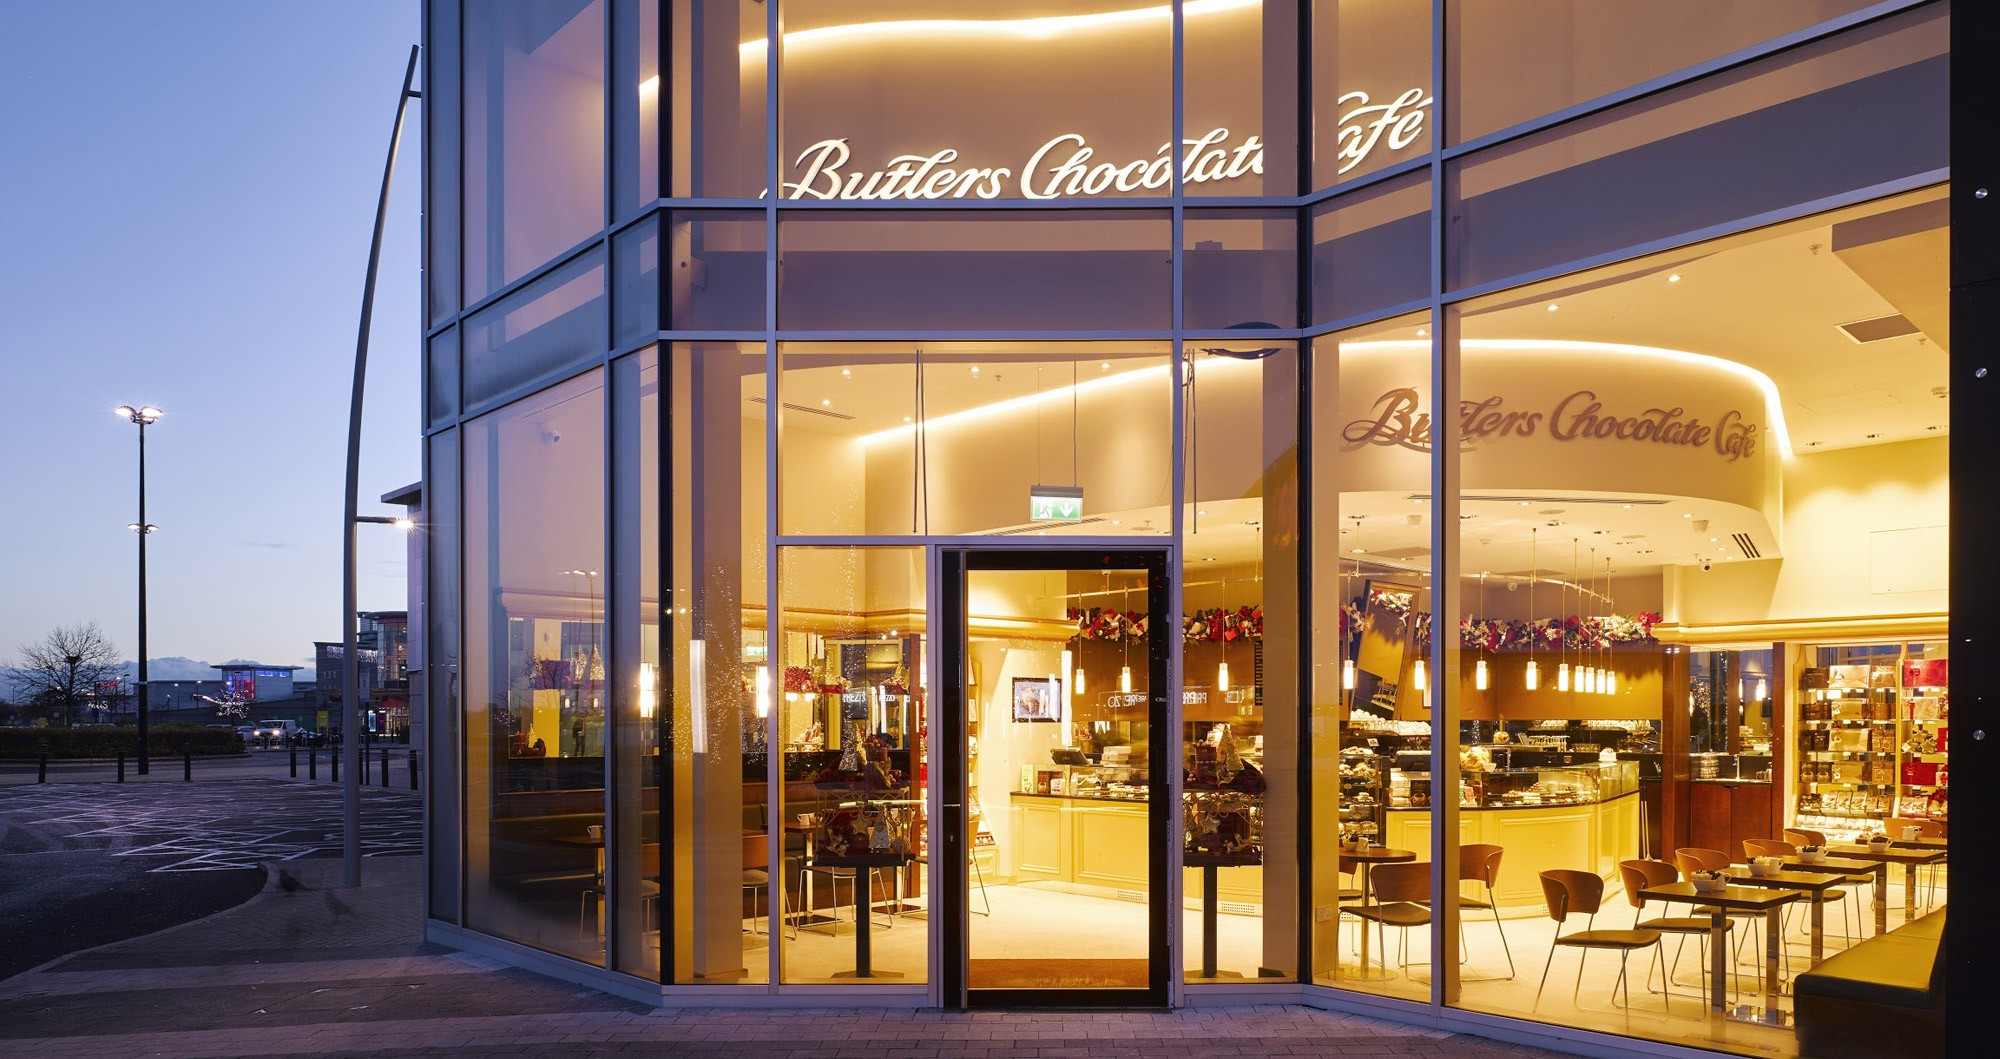 Butlers Chocolates Liffey Valley Shopping Centre, Dublin 22